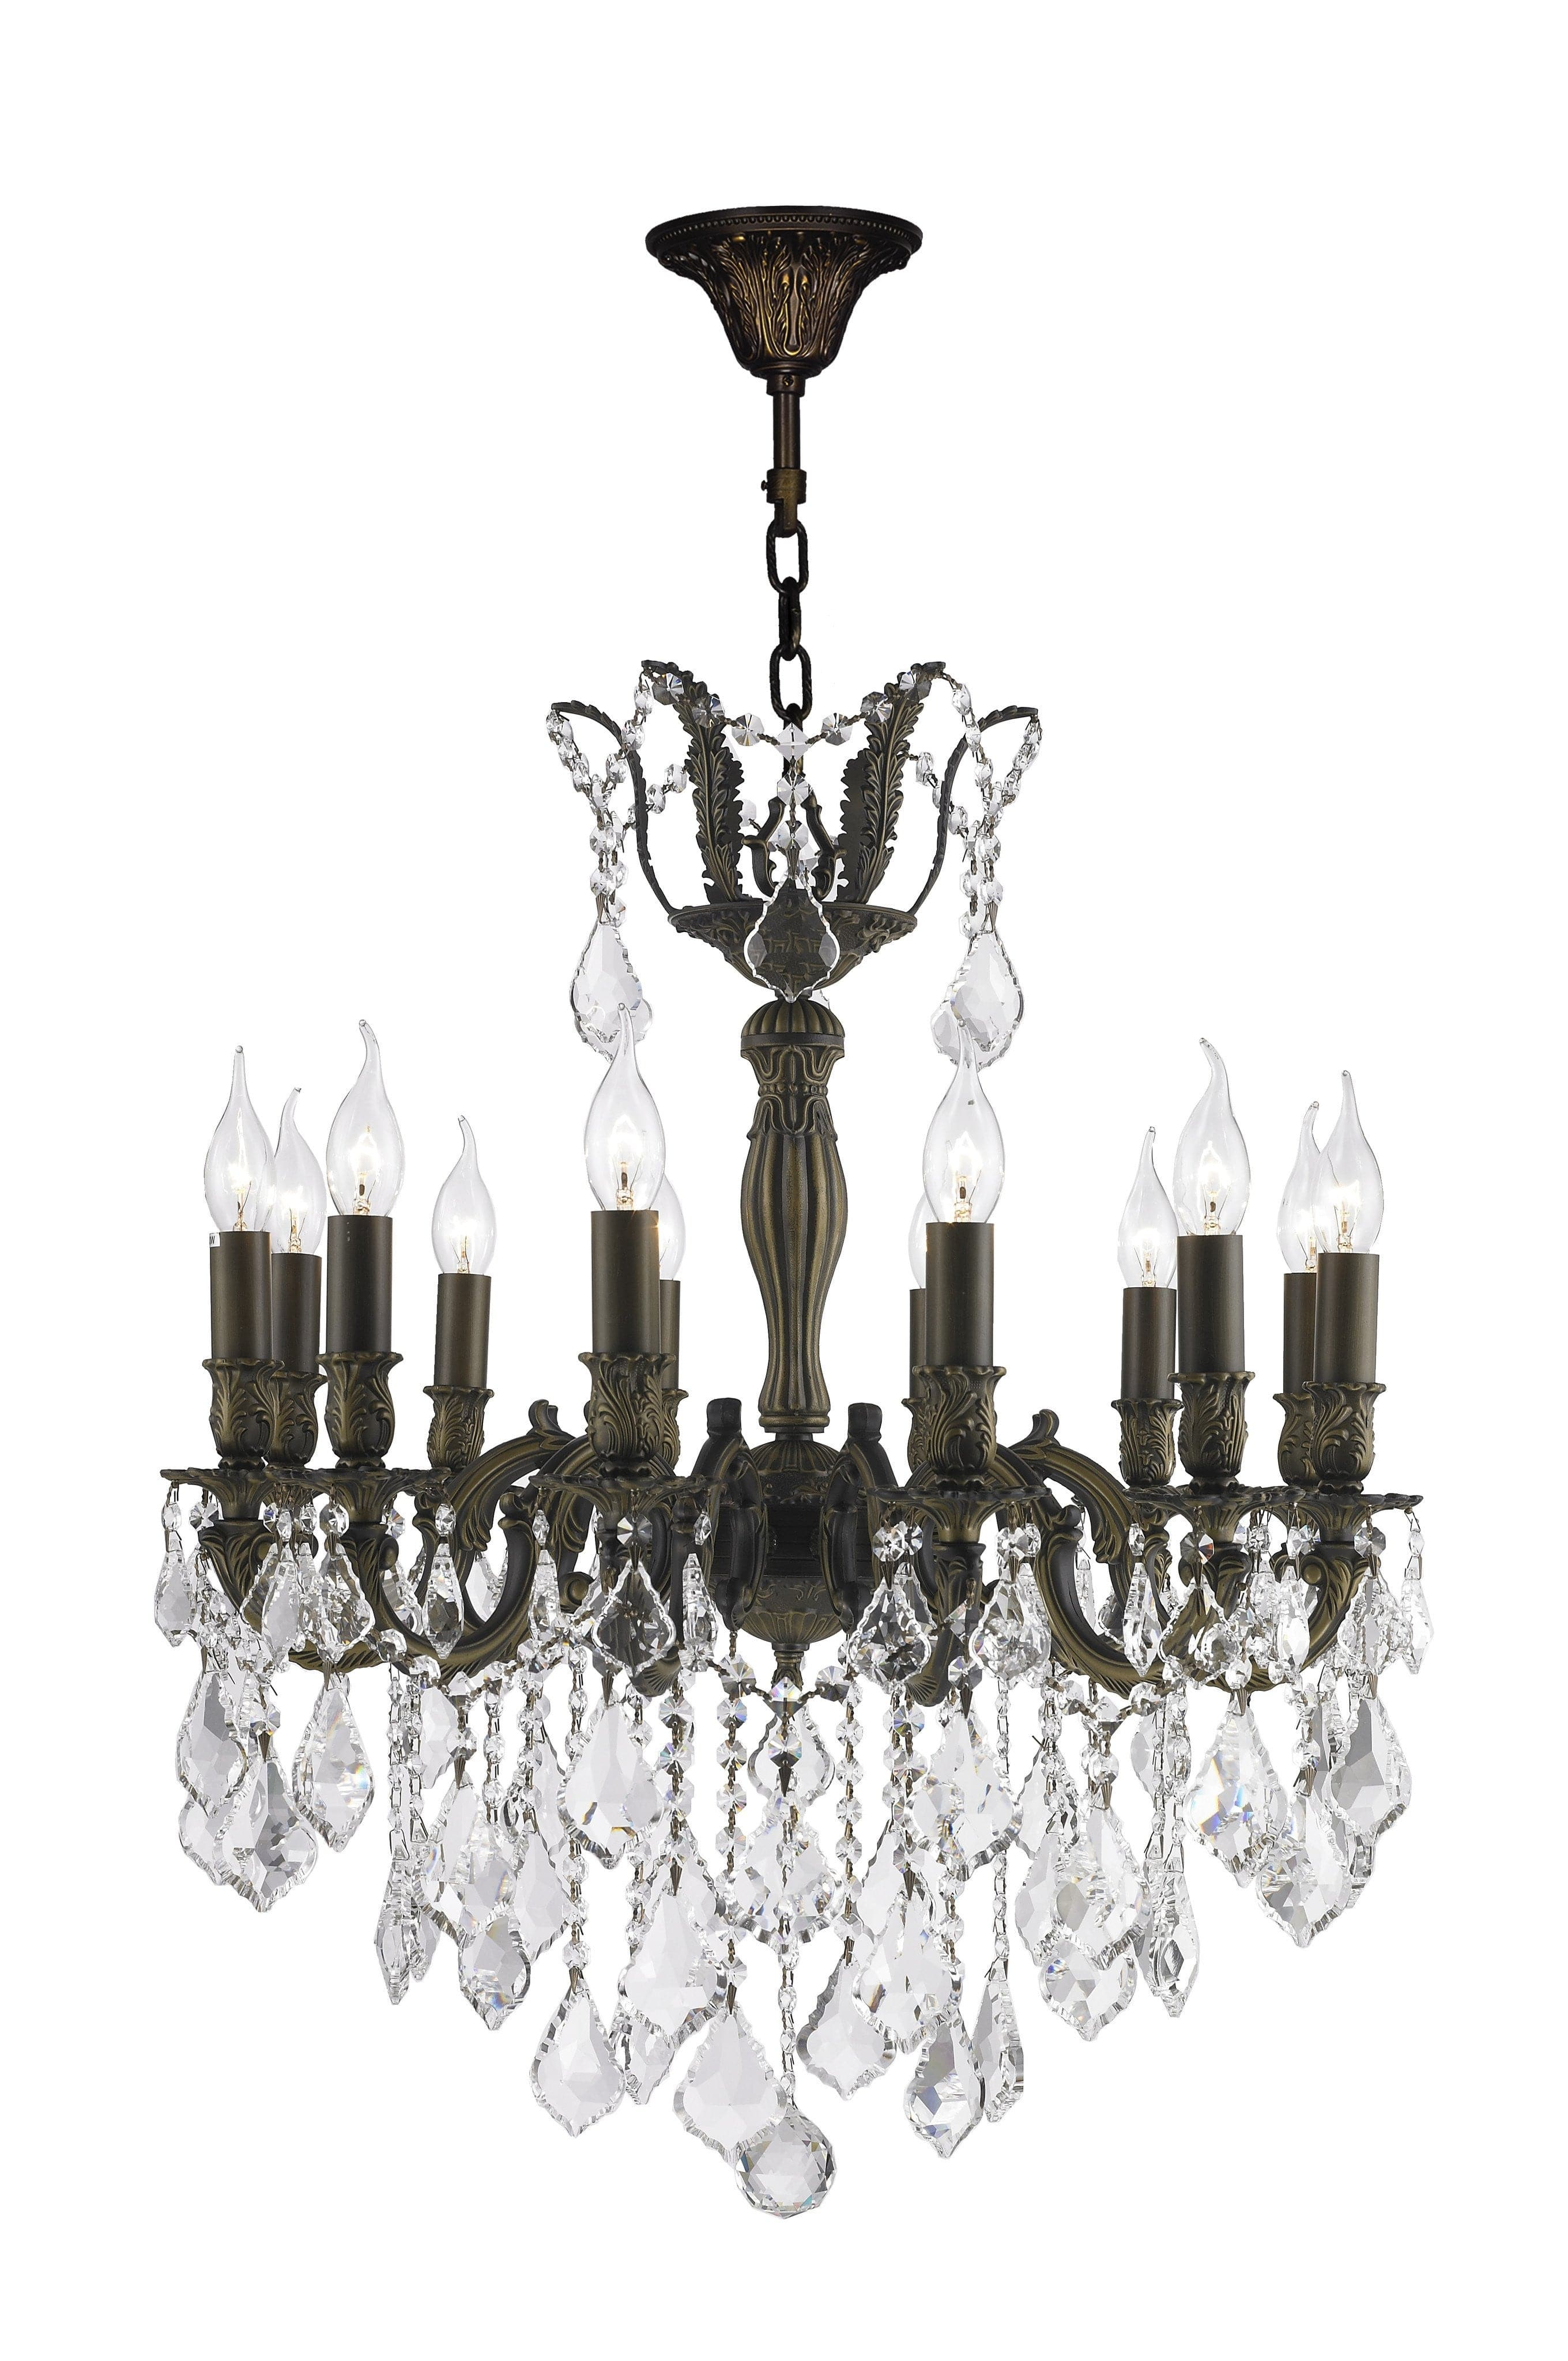 AMERICANA 12 Light Crystal Chandelier Antique Bronze Style